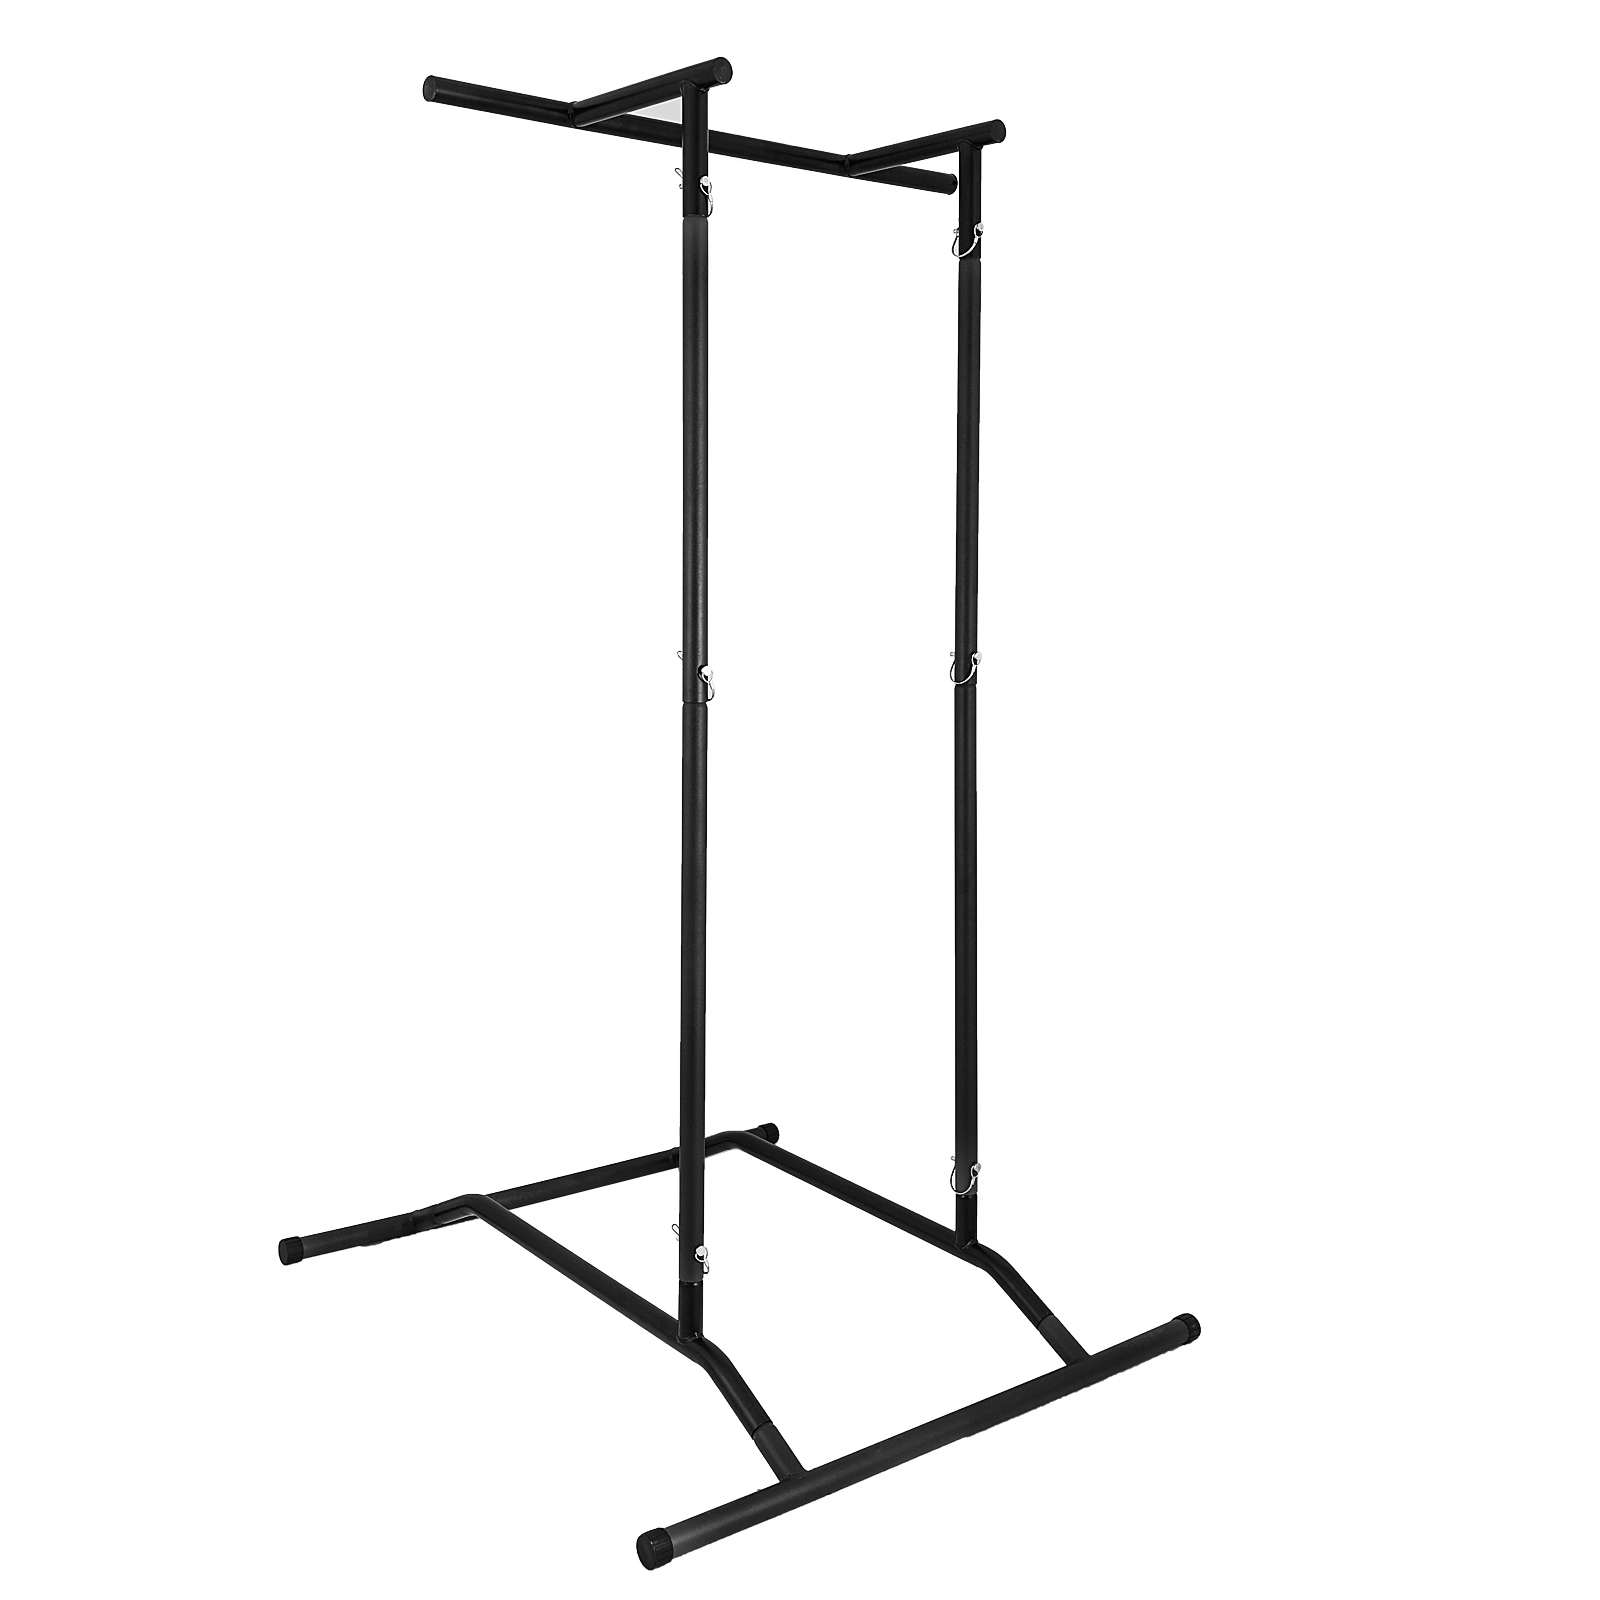 Portable-Power-Tower-for-Home-Gym-Workout-With-Dip-Station-And-Chin-Pull-Up-Bar thumbnail 41